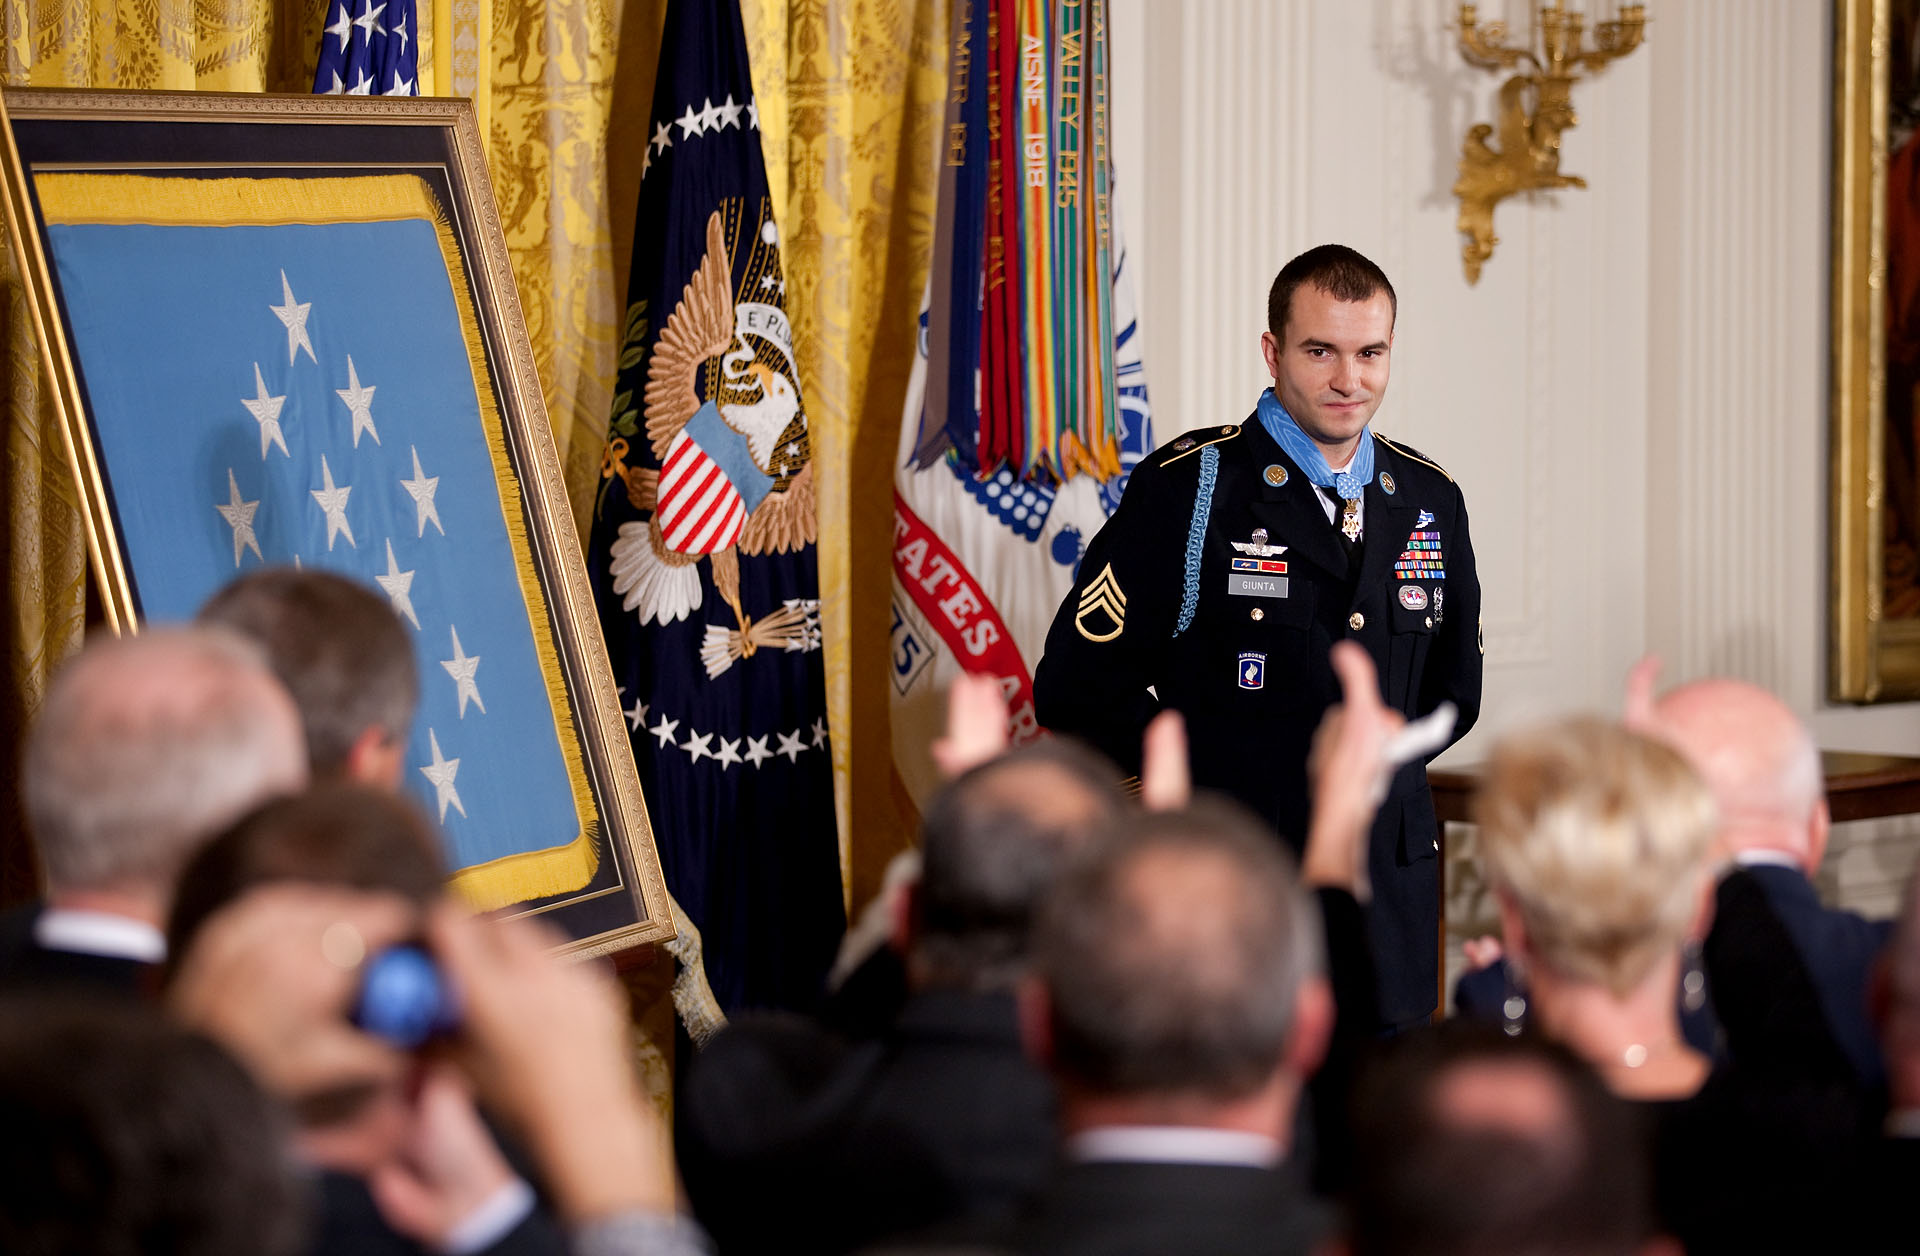 Staff Sergeant Salvatore Giunta is Recognized by the Audience after Receiving the Medal of Honor